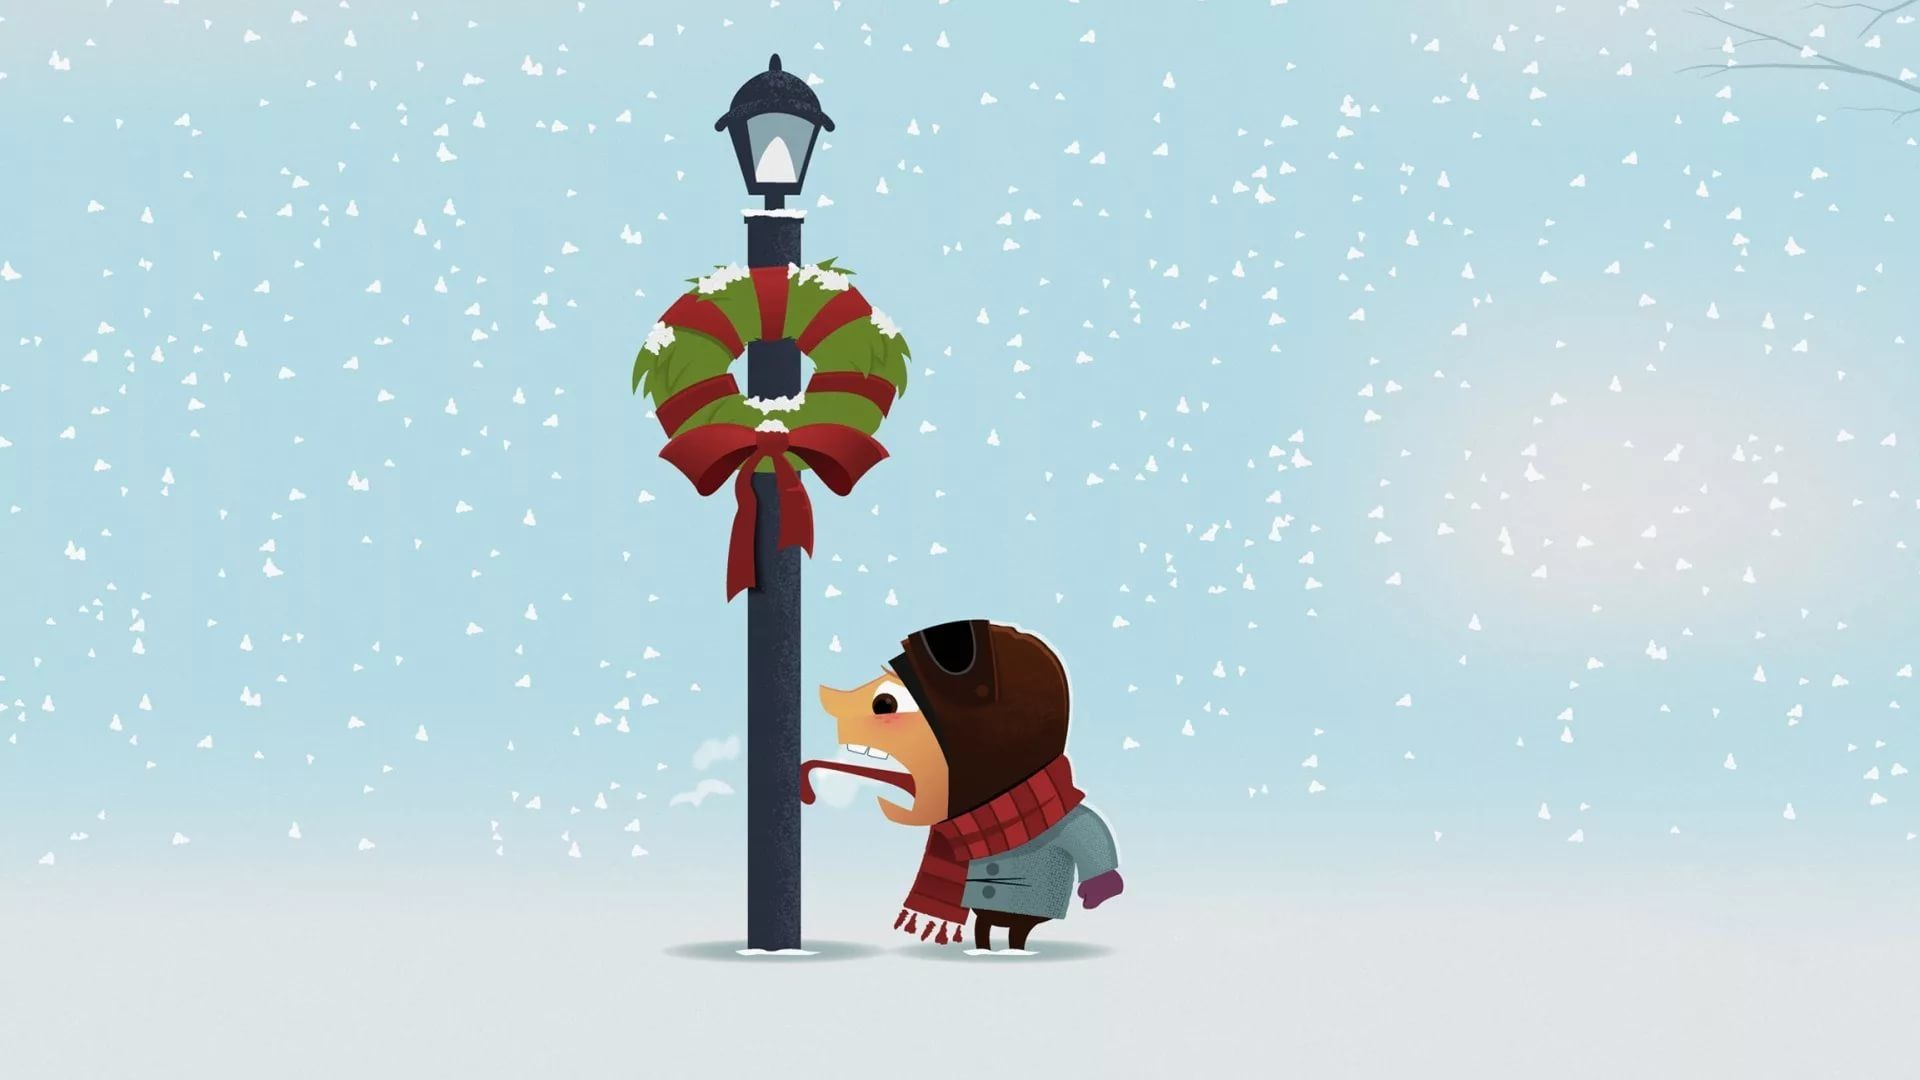 Funny Christmas hd wallpaper 1080p for pc